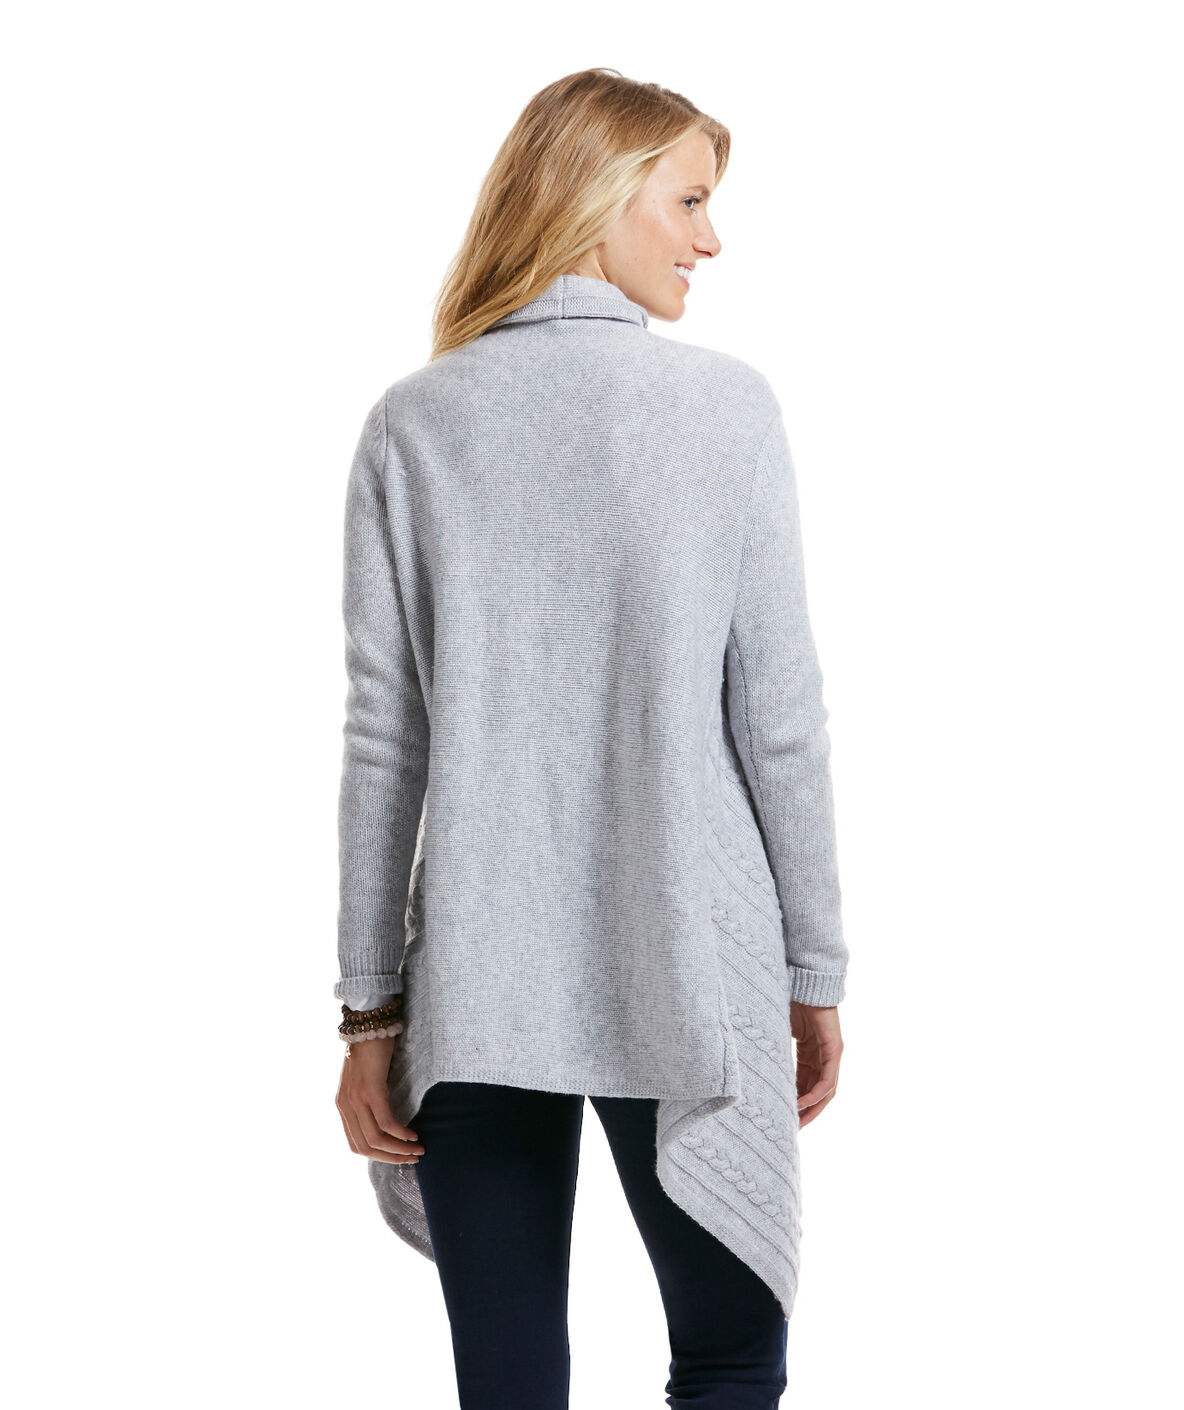 Shop Cable Waterfall Cardigan at vineyard vines